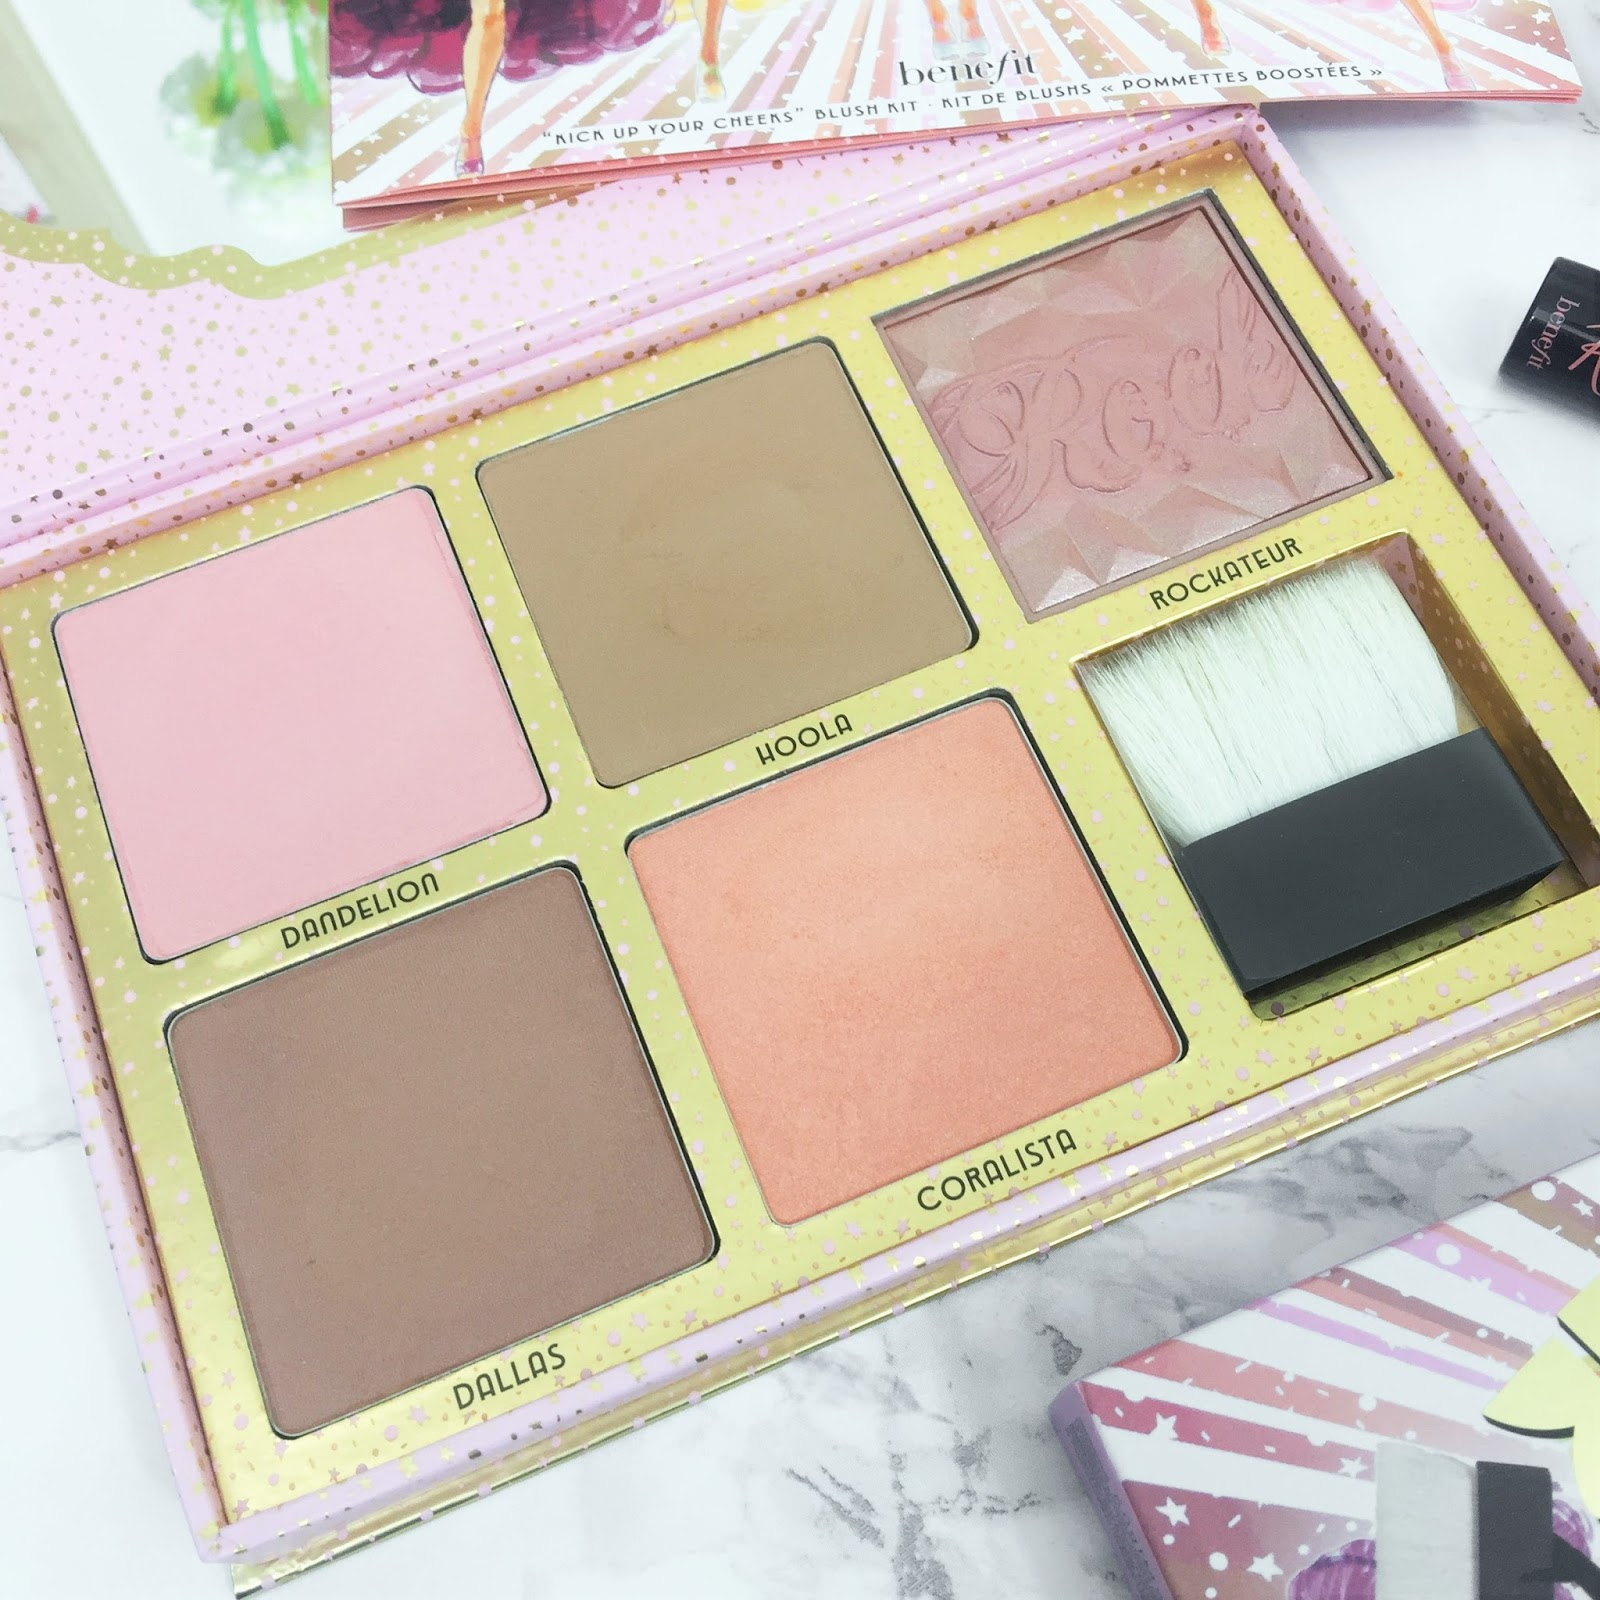 Benefit Cheekathon Palette Review